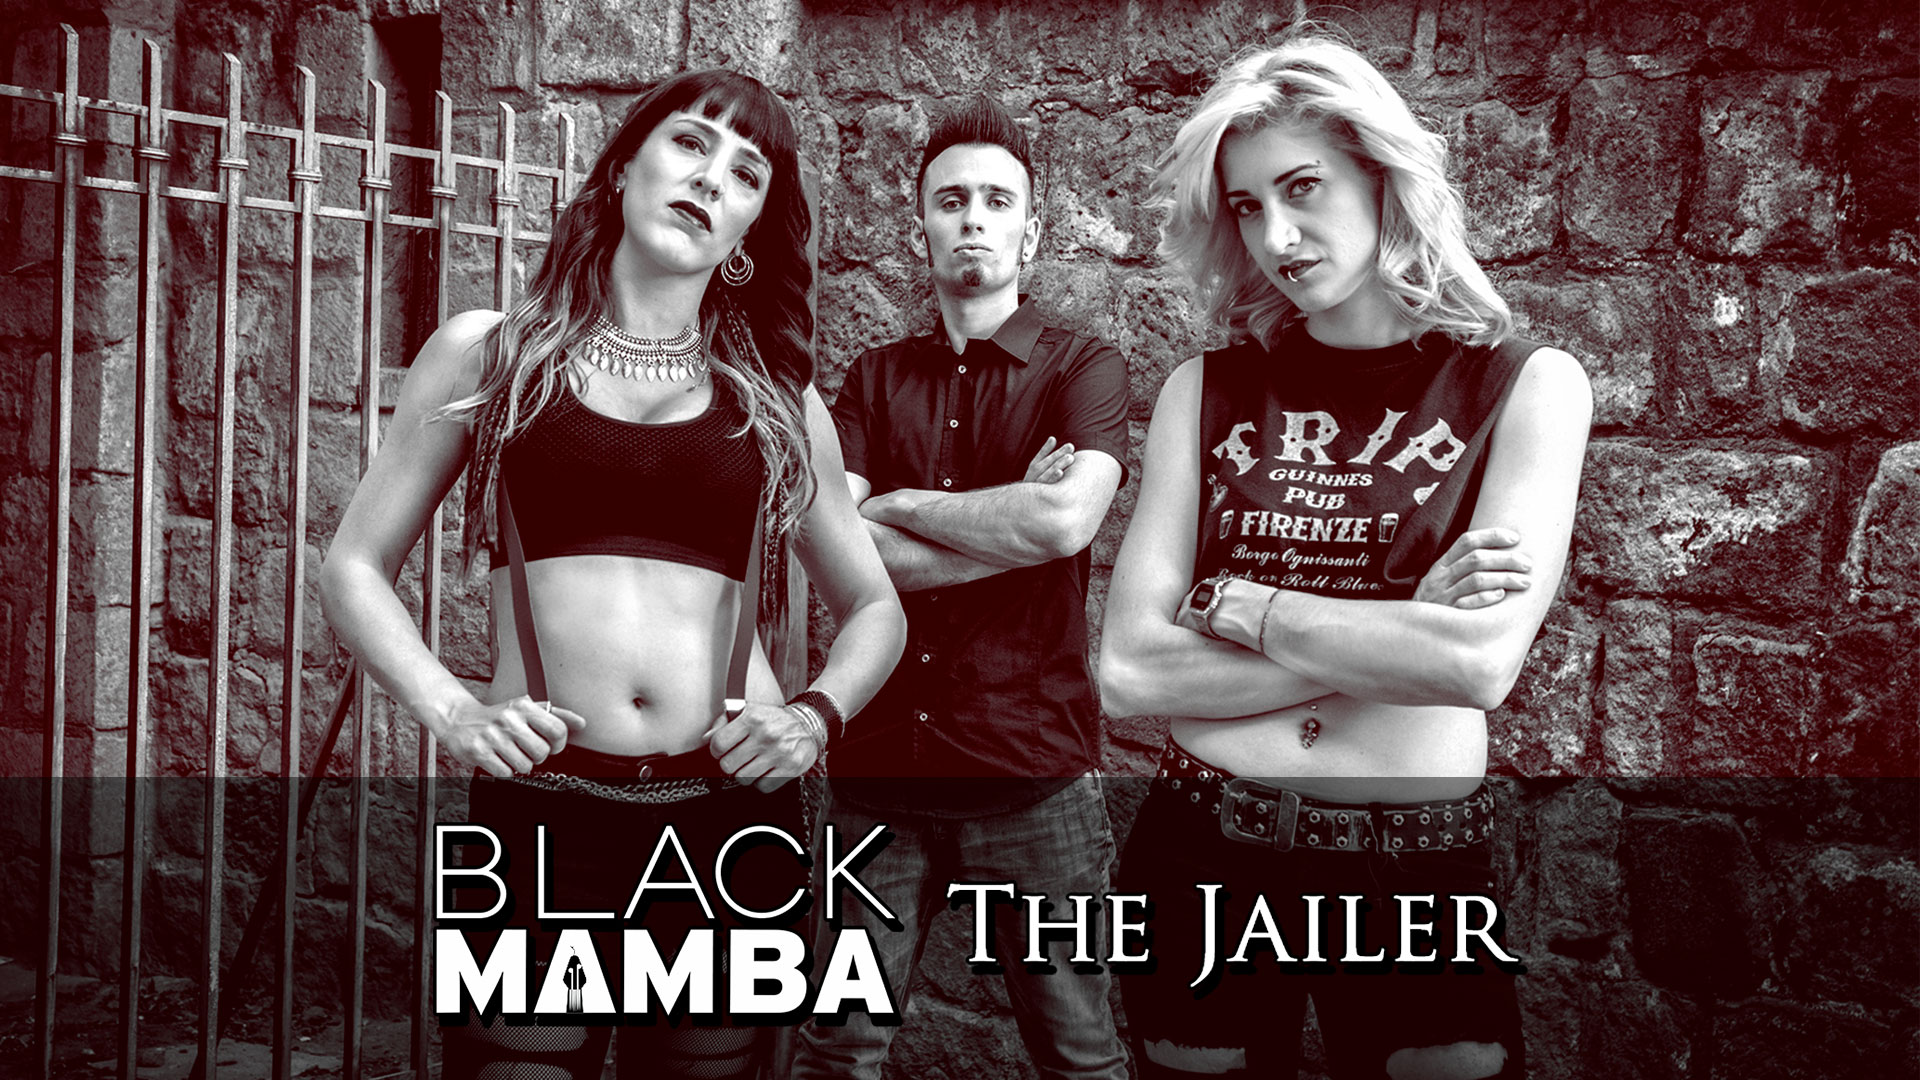 Black Mamba The Jailer